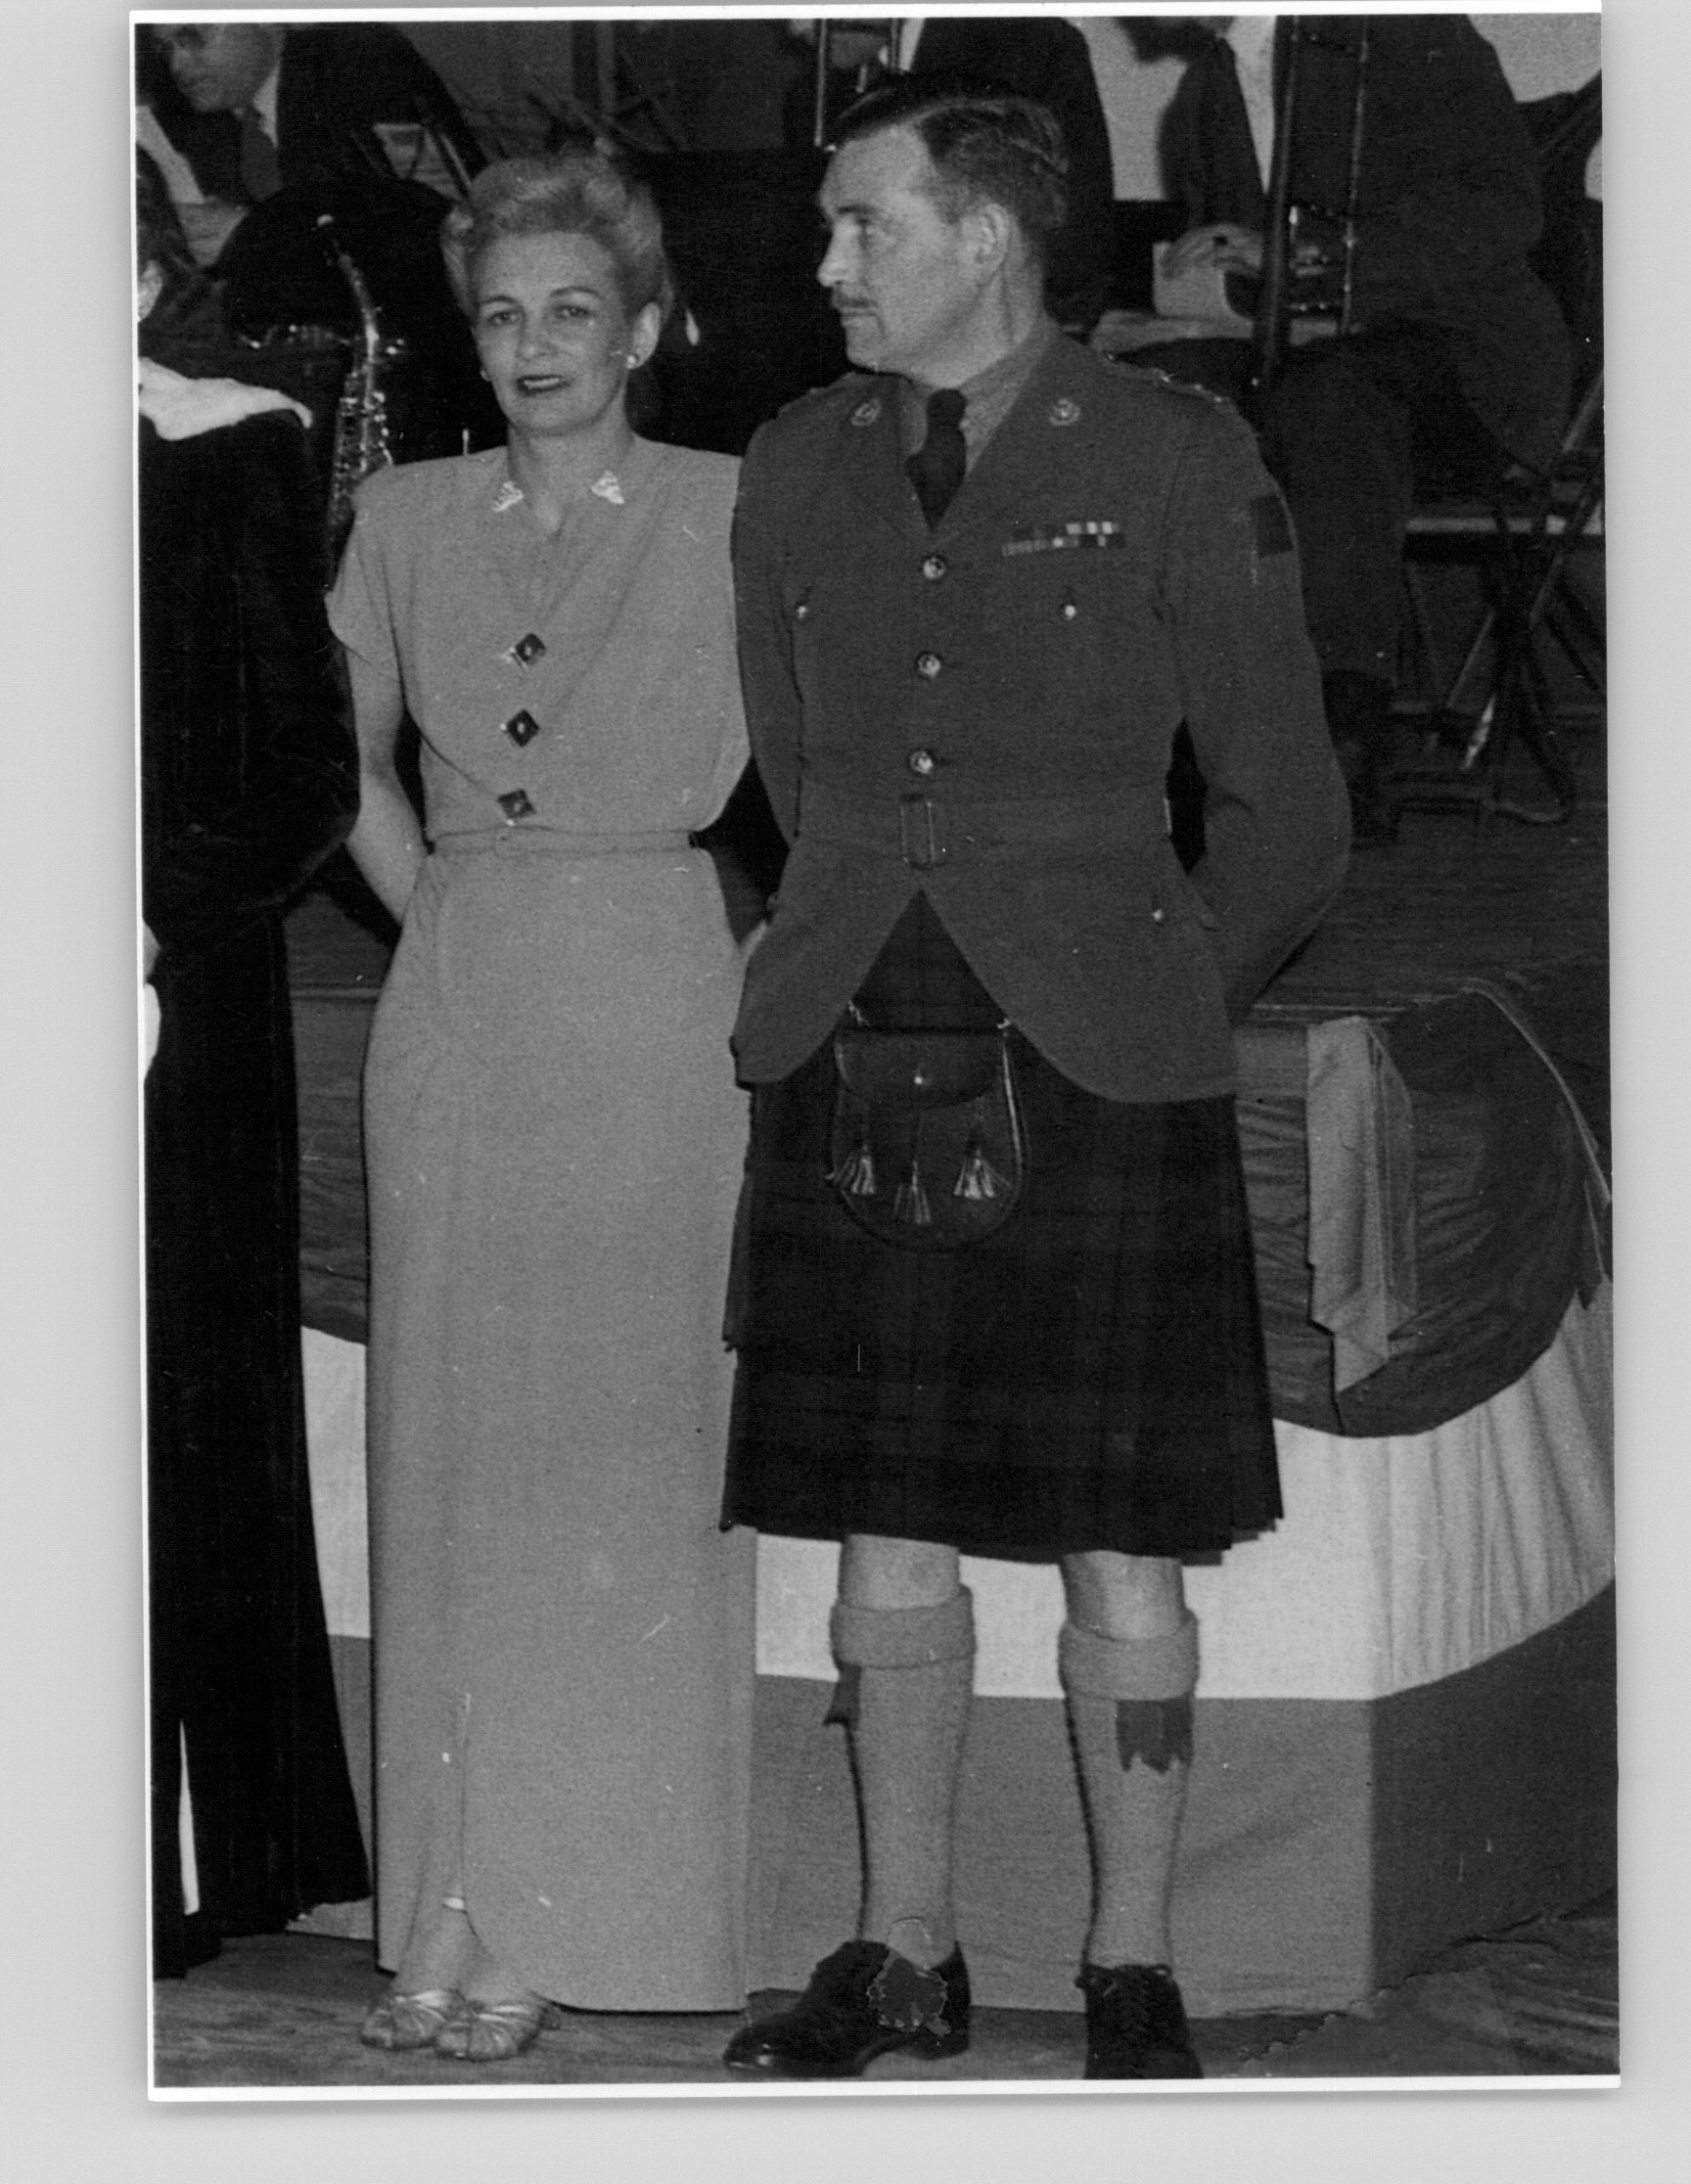 Lt-Col J.D. Stewart, DSO, and Mrs Constance Stewart, James Street Armouries, Hamilton, 1946.